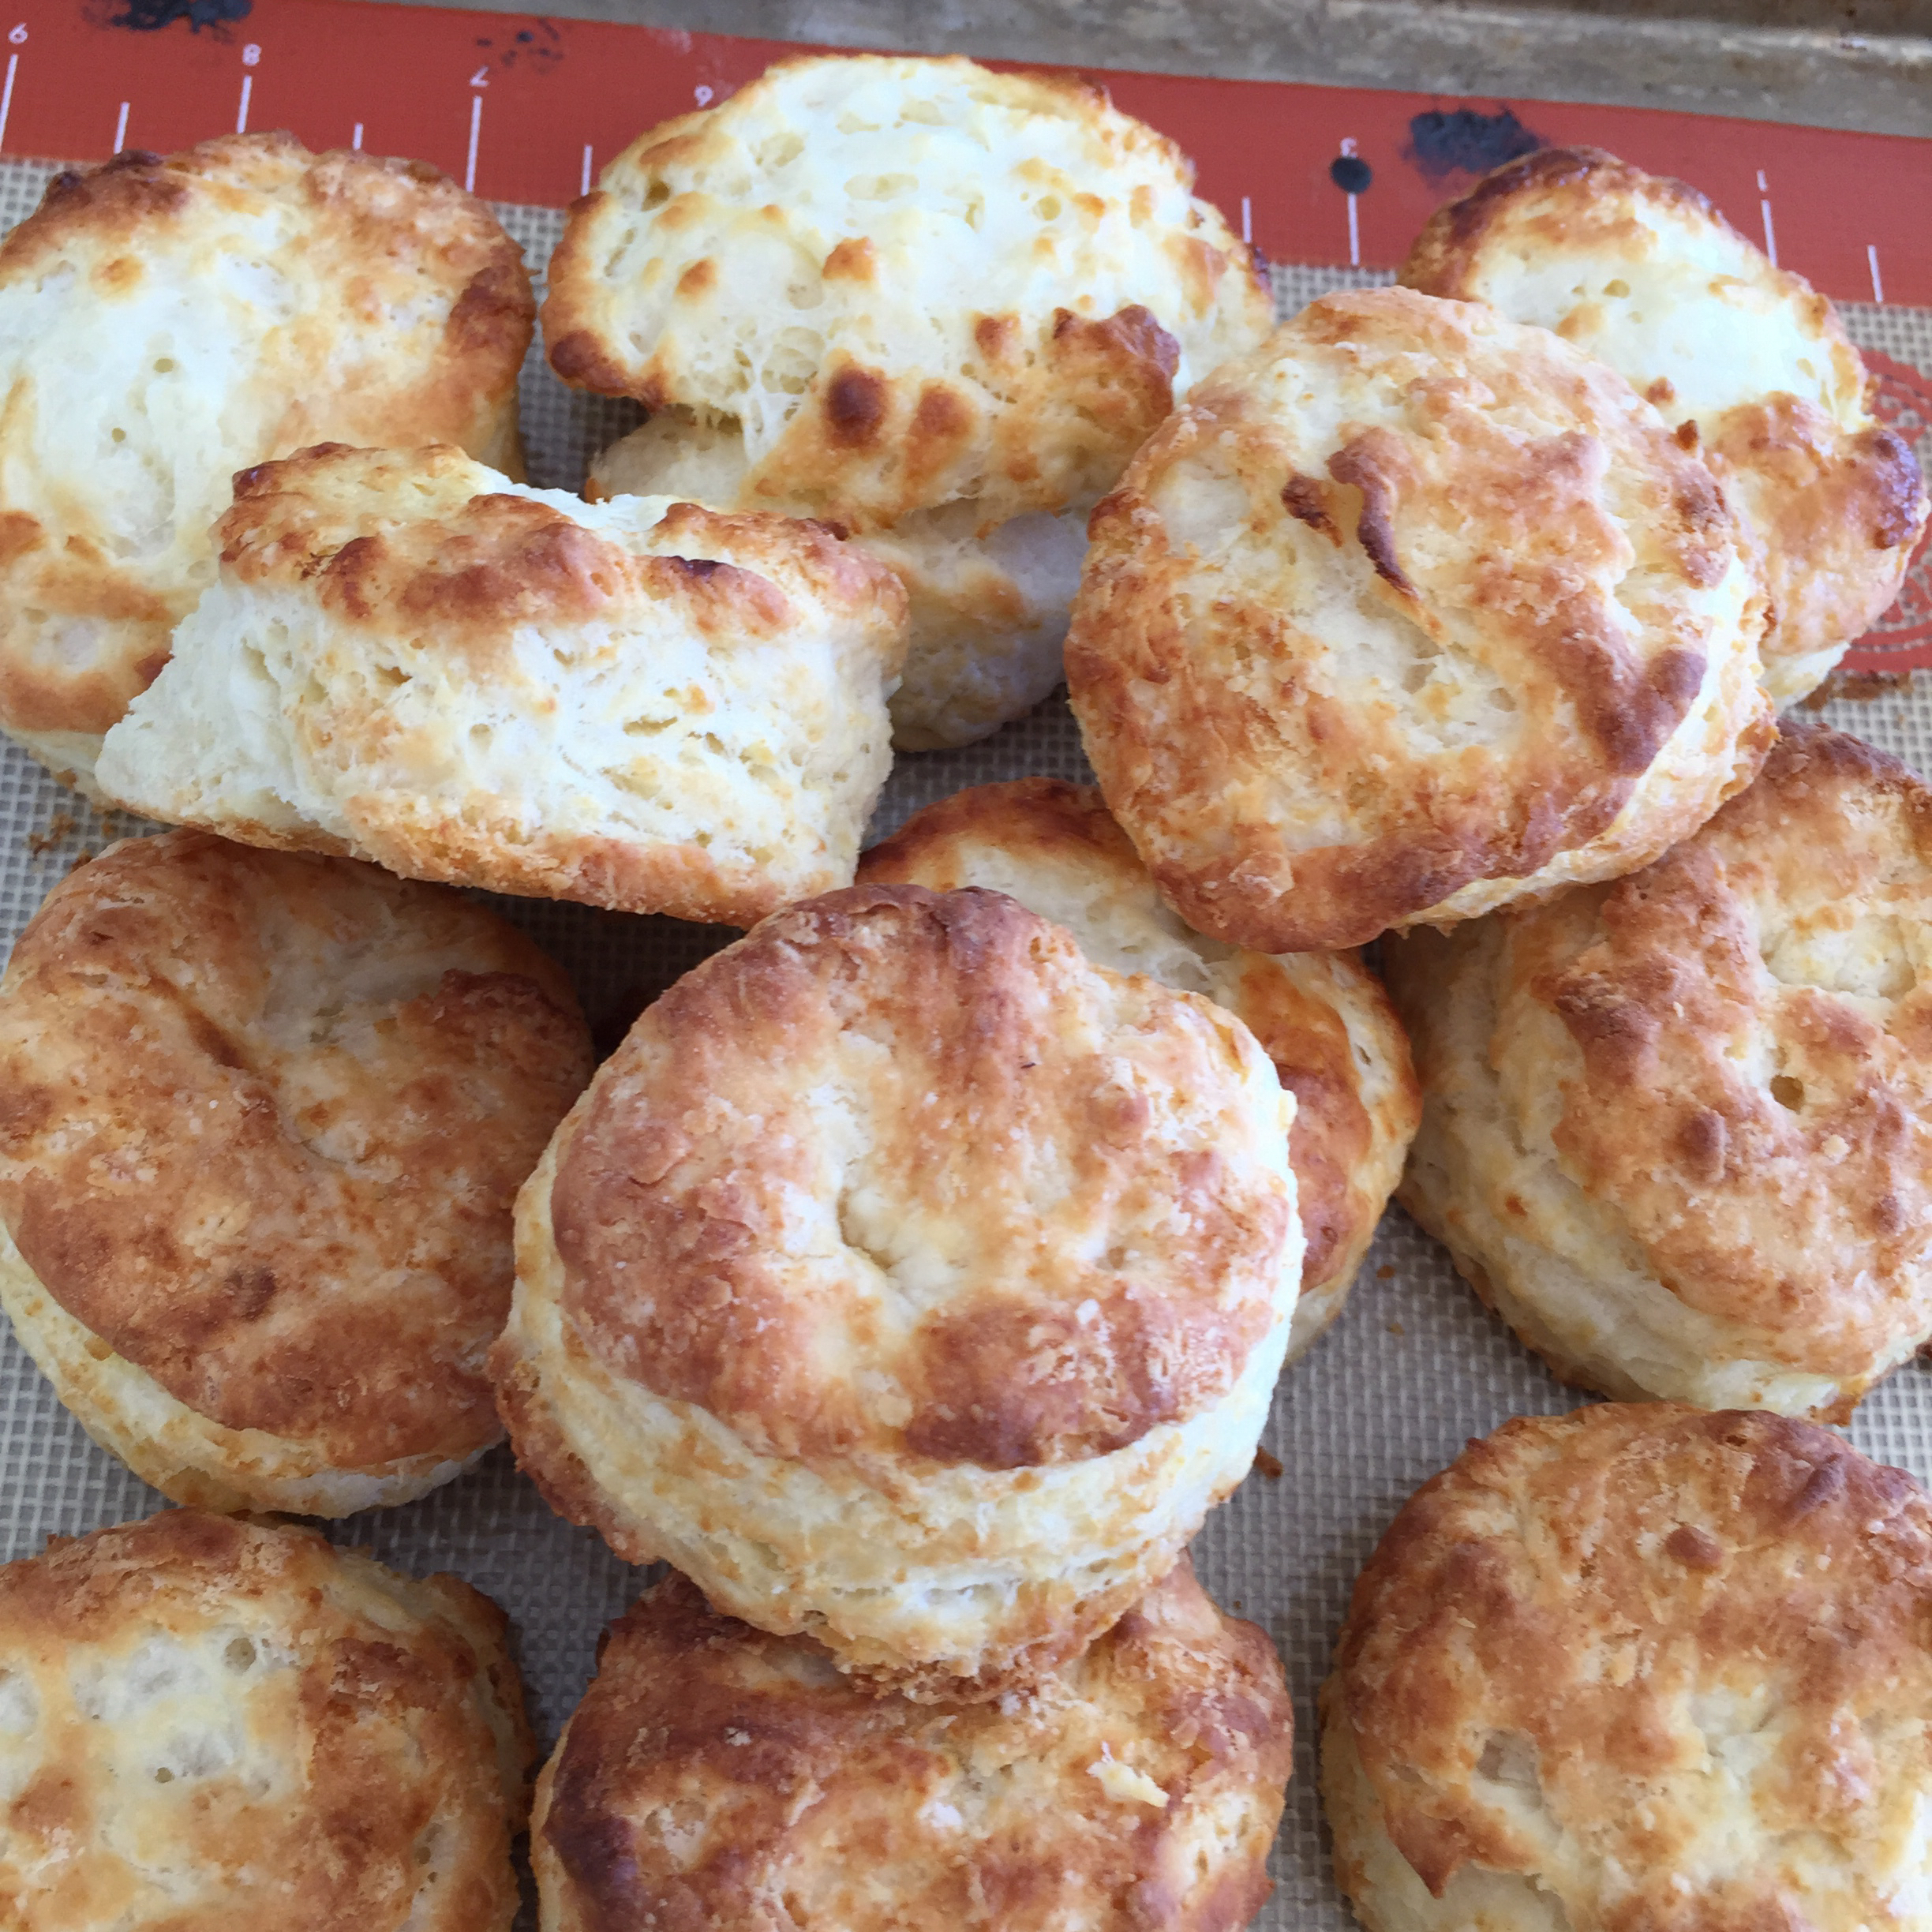 Sadie's Buttermilk Biscuits huntersand archers yiayia